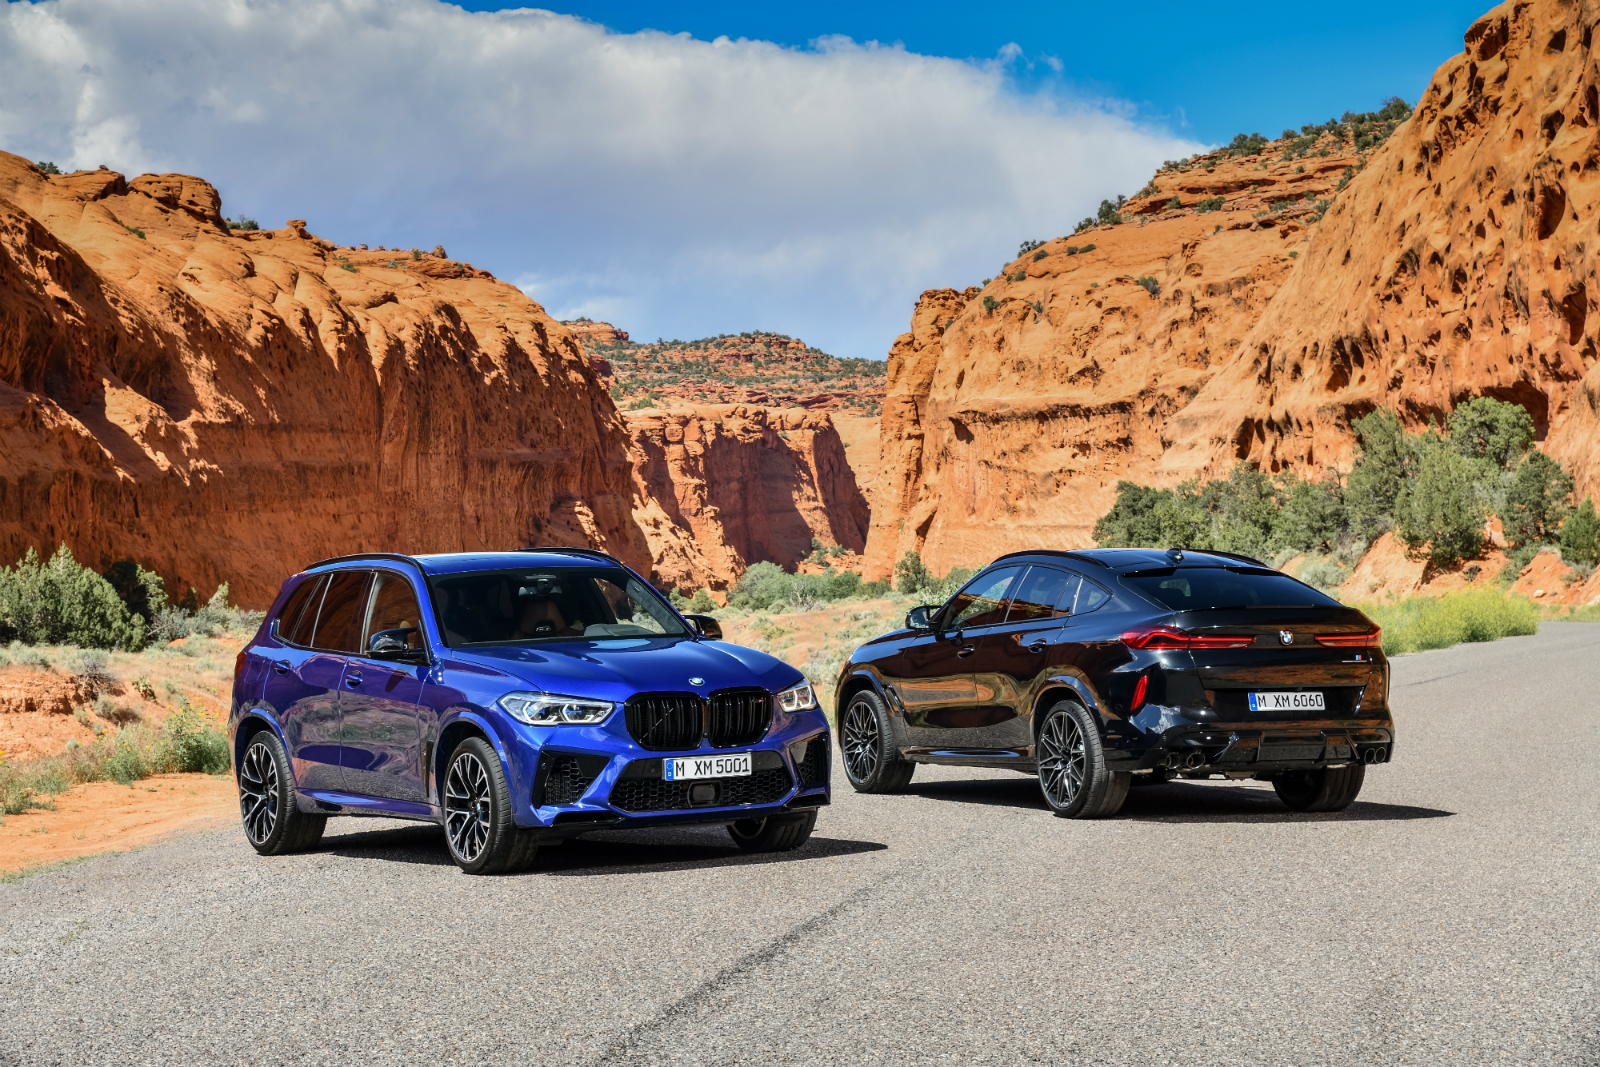 Noile BMW X5 M si BMW X5 M Competition, noile BMW X6 M si BMW X6 M Competition